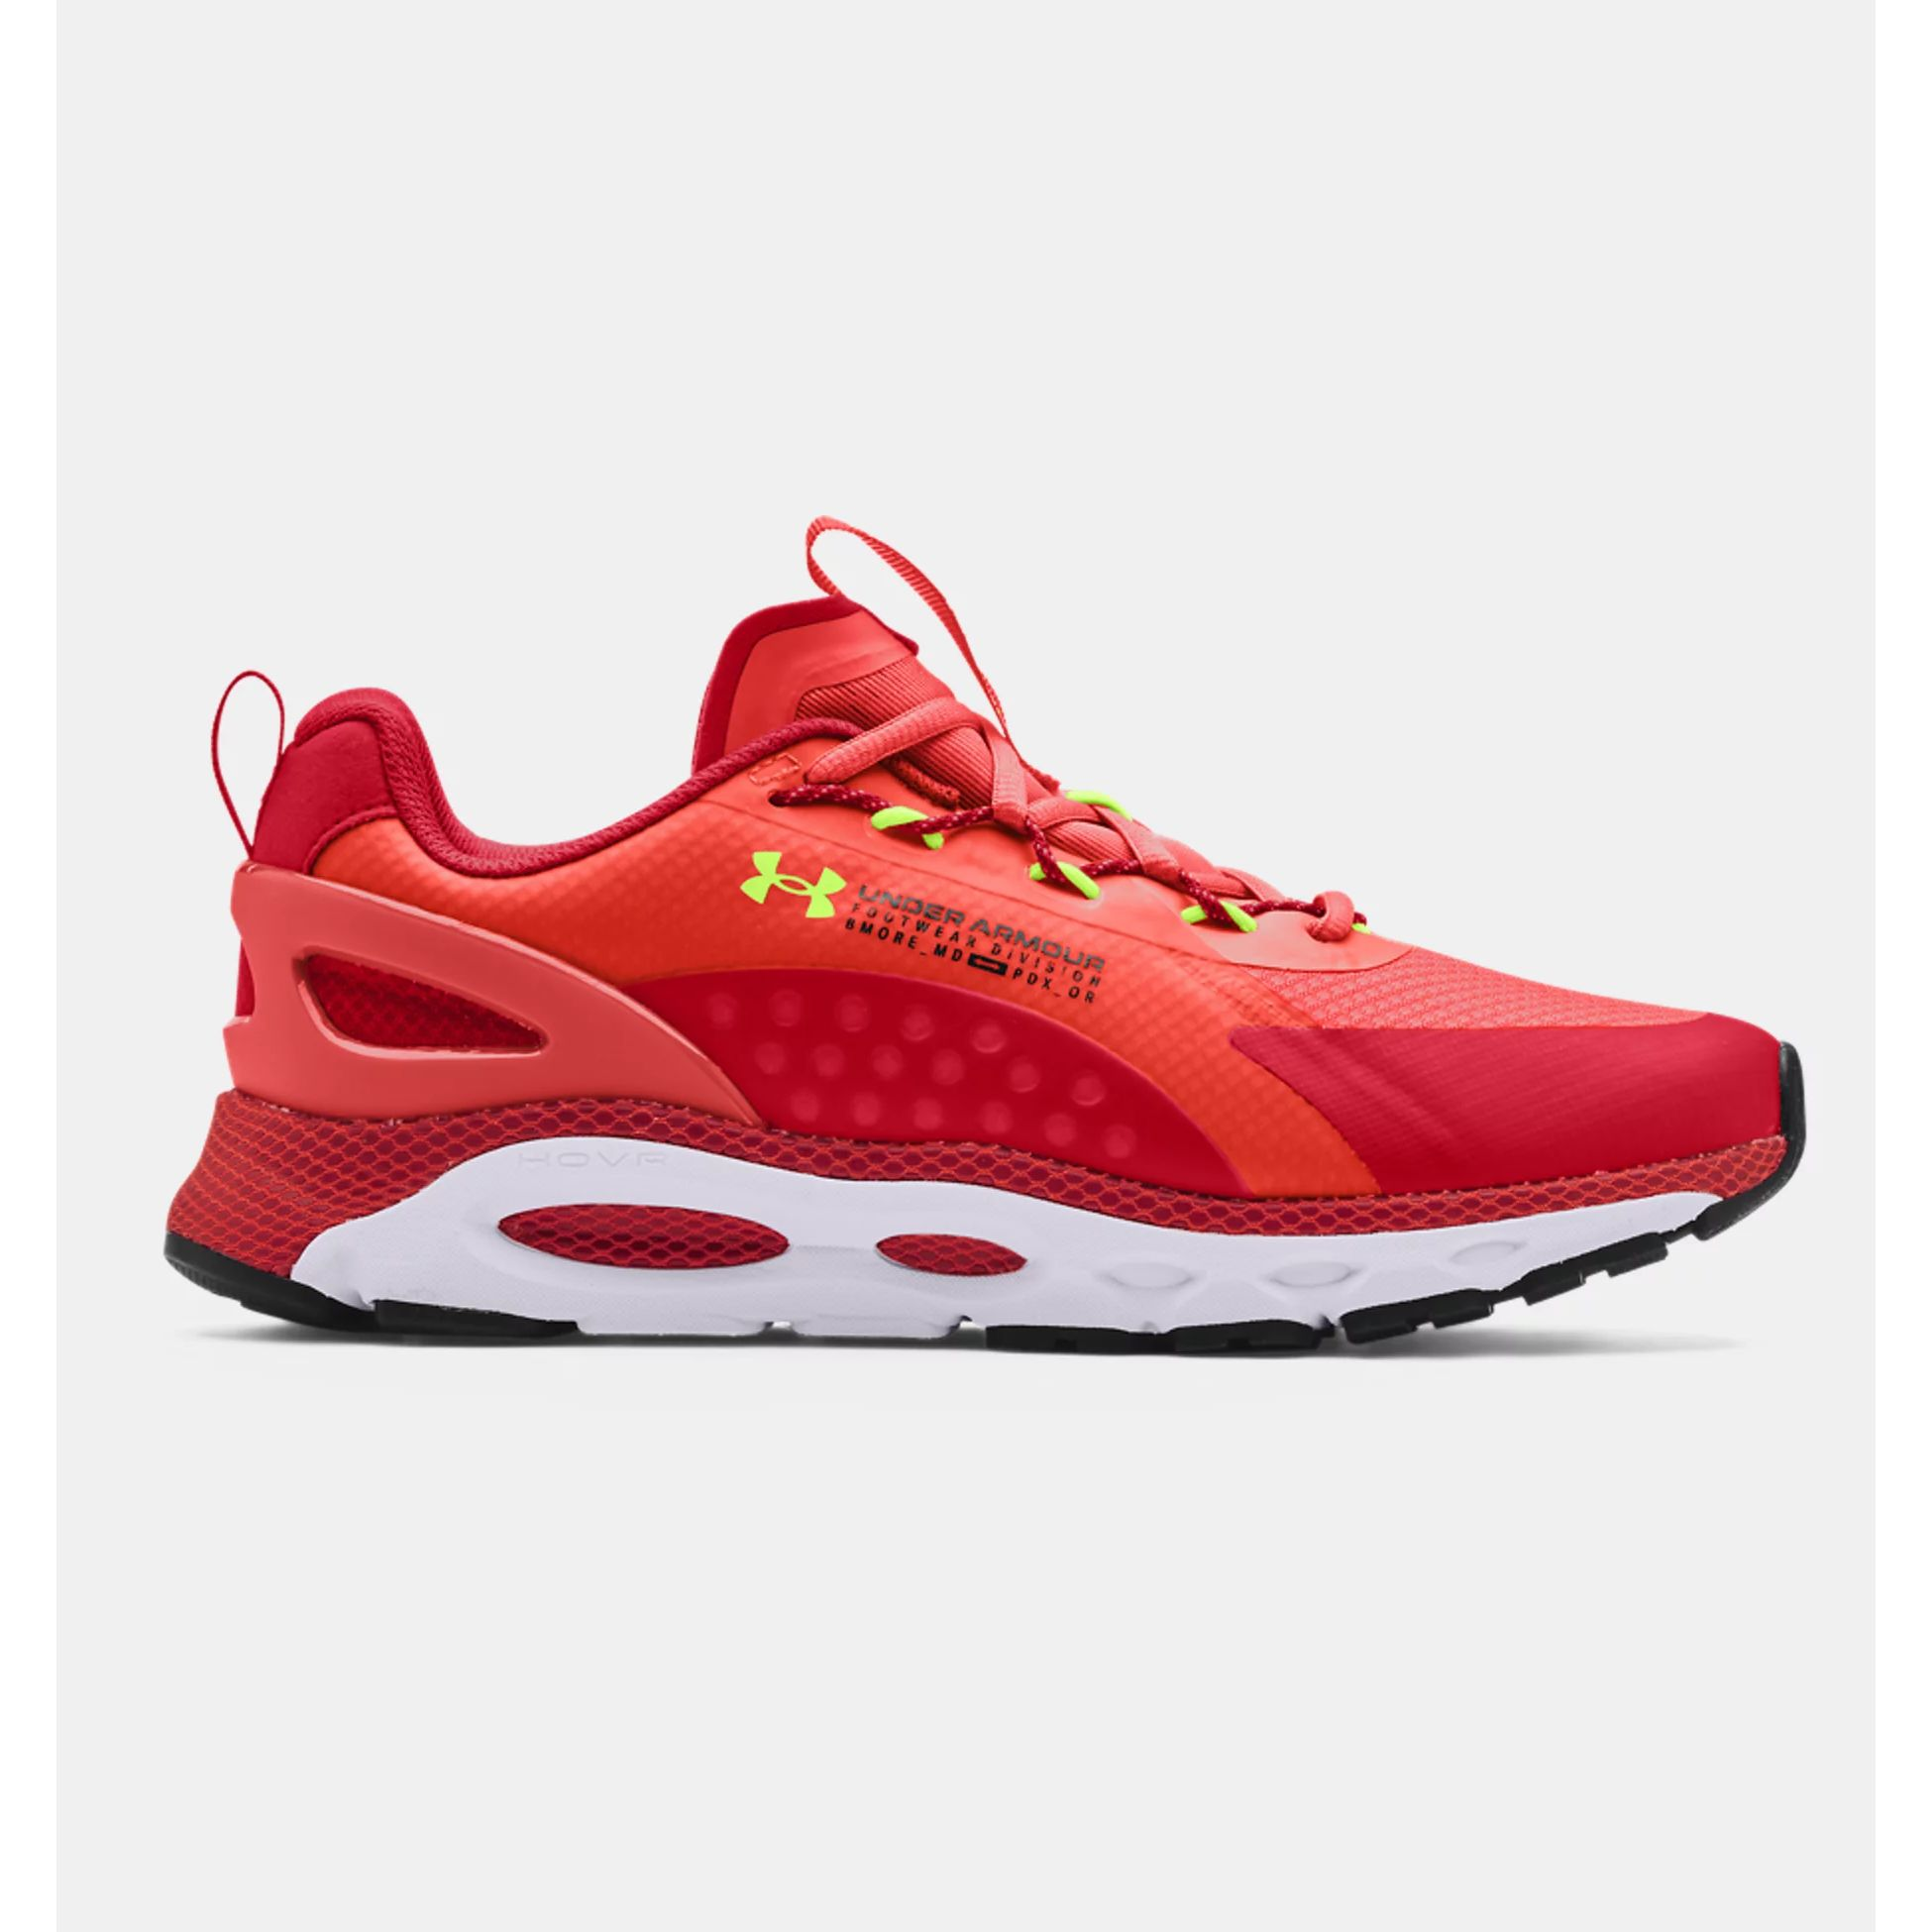 Shoes -  under armour Unisex HOVR Infinite Summit 2